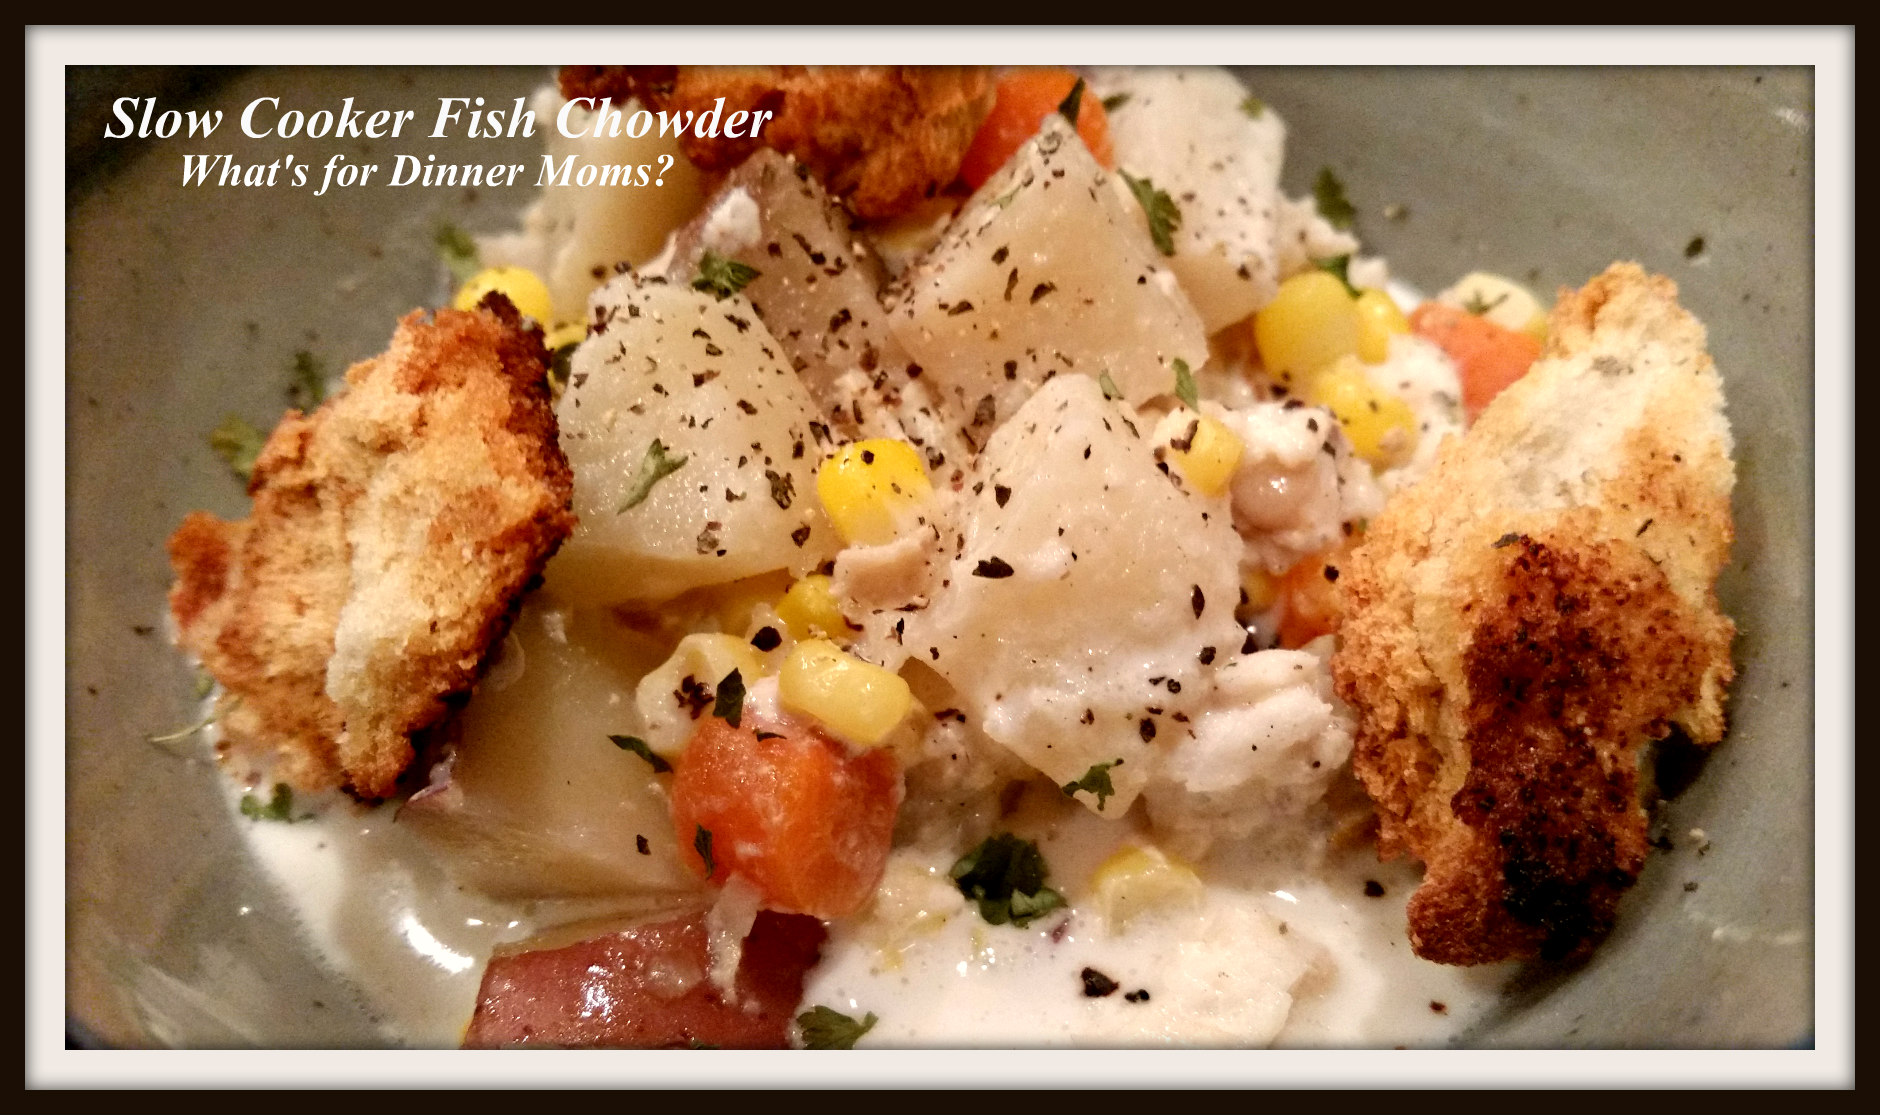 Slow cooker fish chowder what 39 s for dinner moms for Crockpot fish chowder